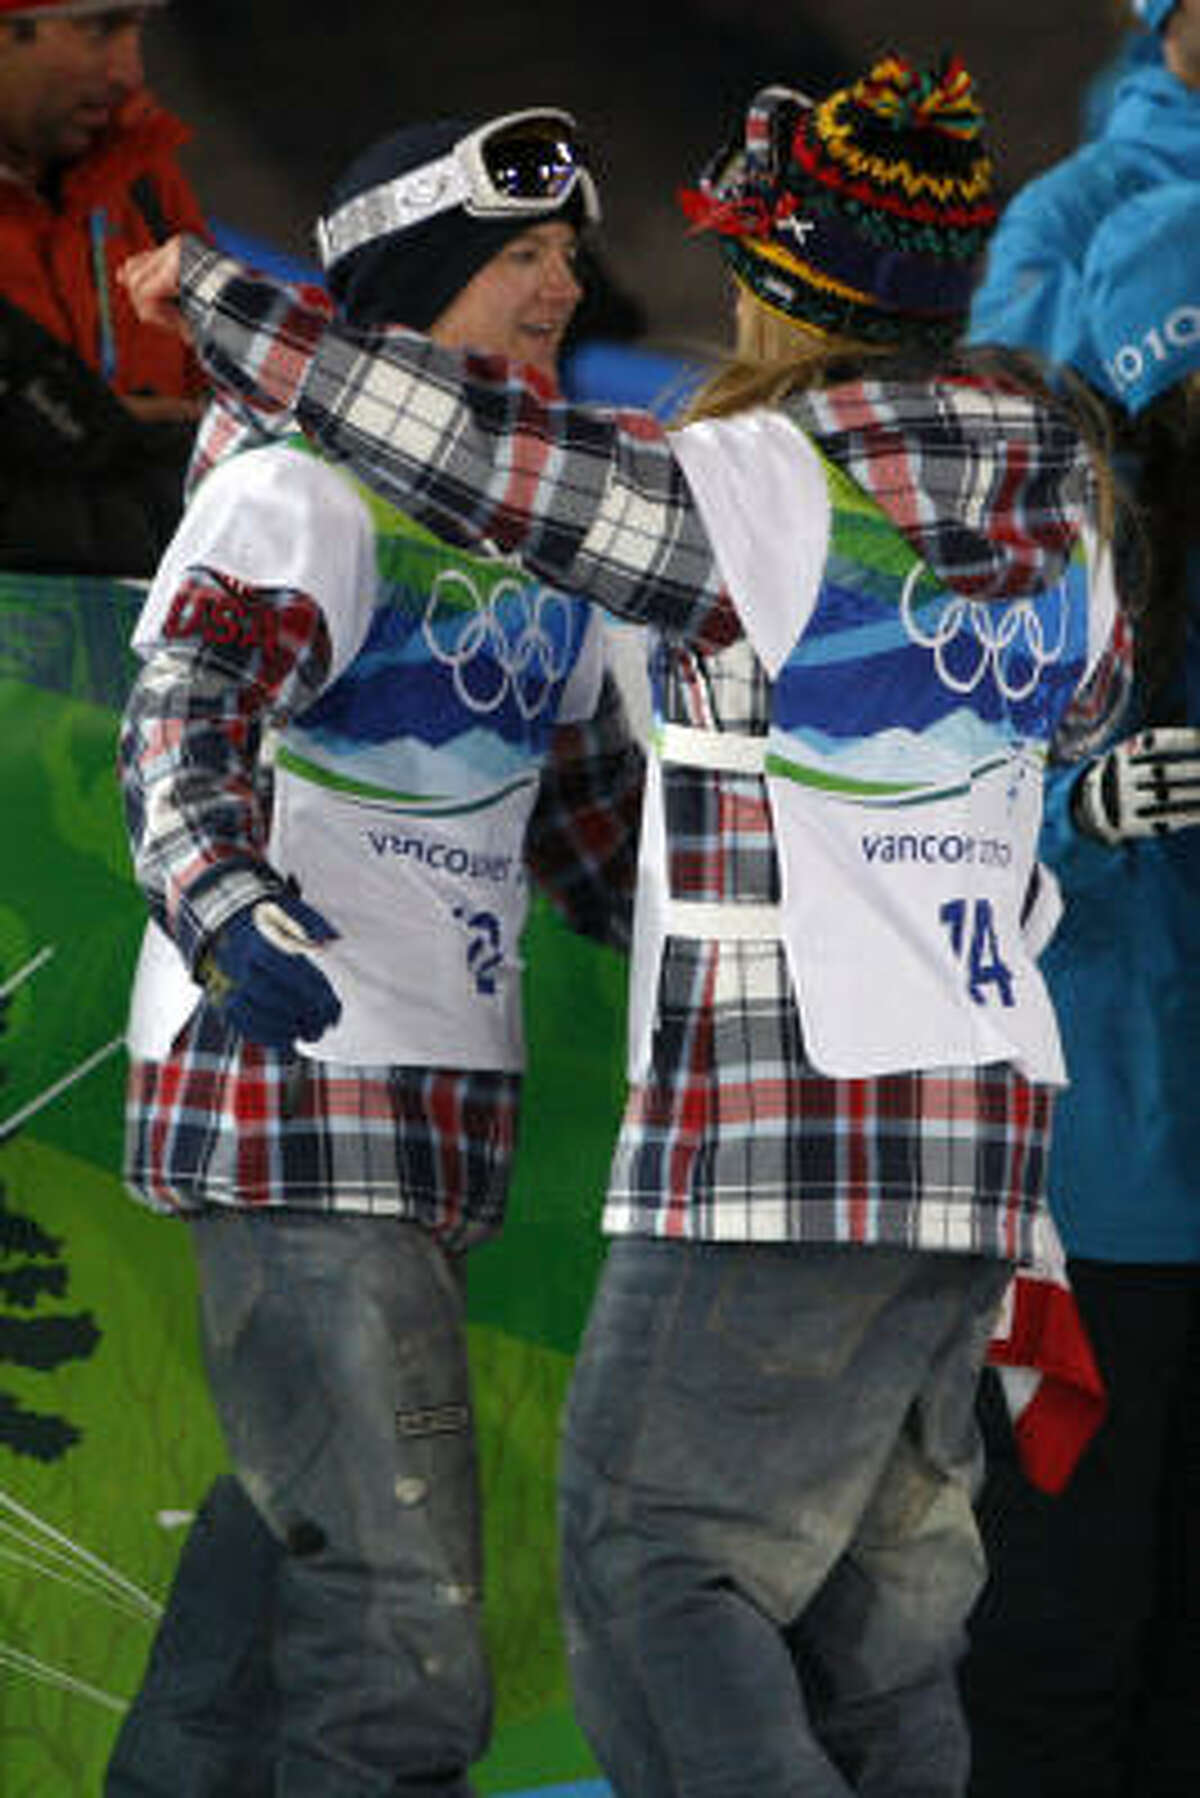 United States teammates Kelly Clark (left) and Hannah Teter congratulate one another after the competition.